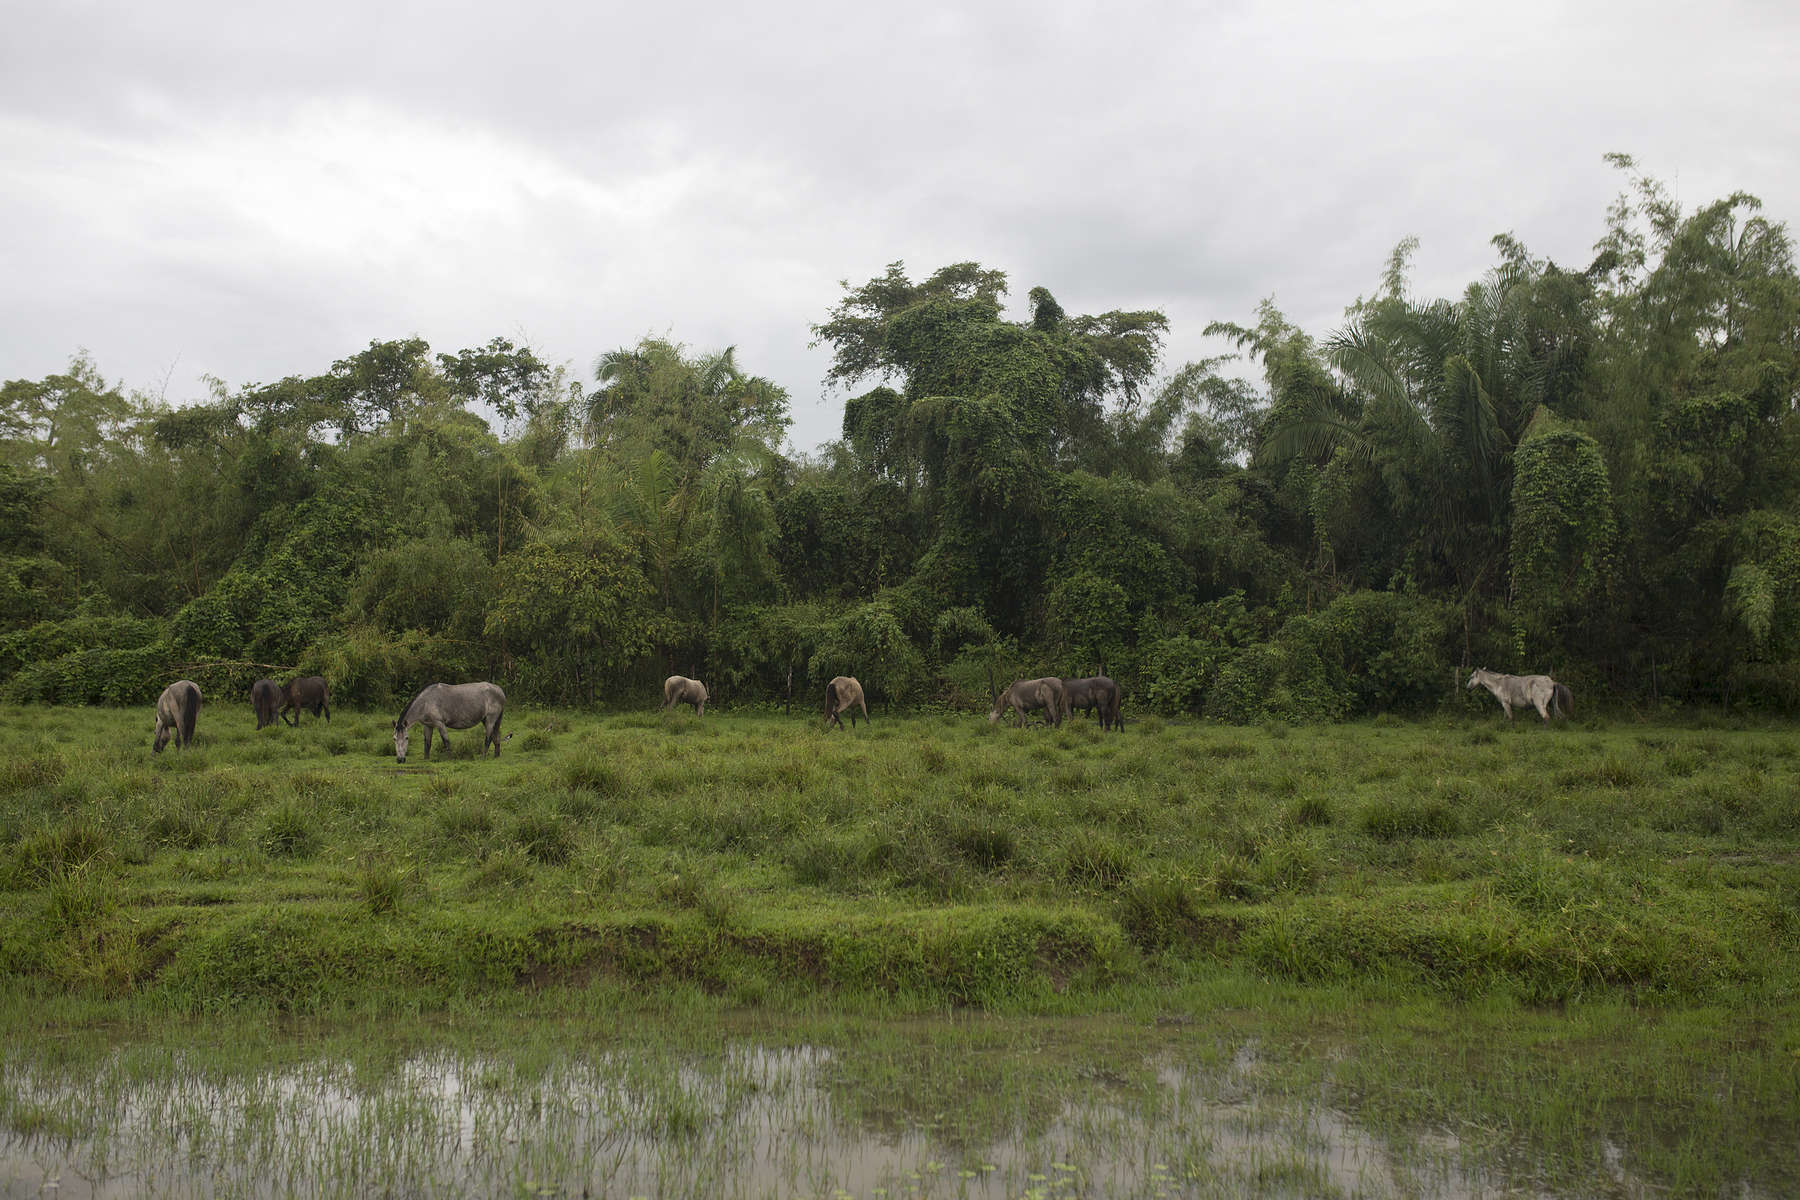 Horses graze a field behind the tiny village of Igarapé Grande where the surfers and their crew parked their riverboat.